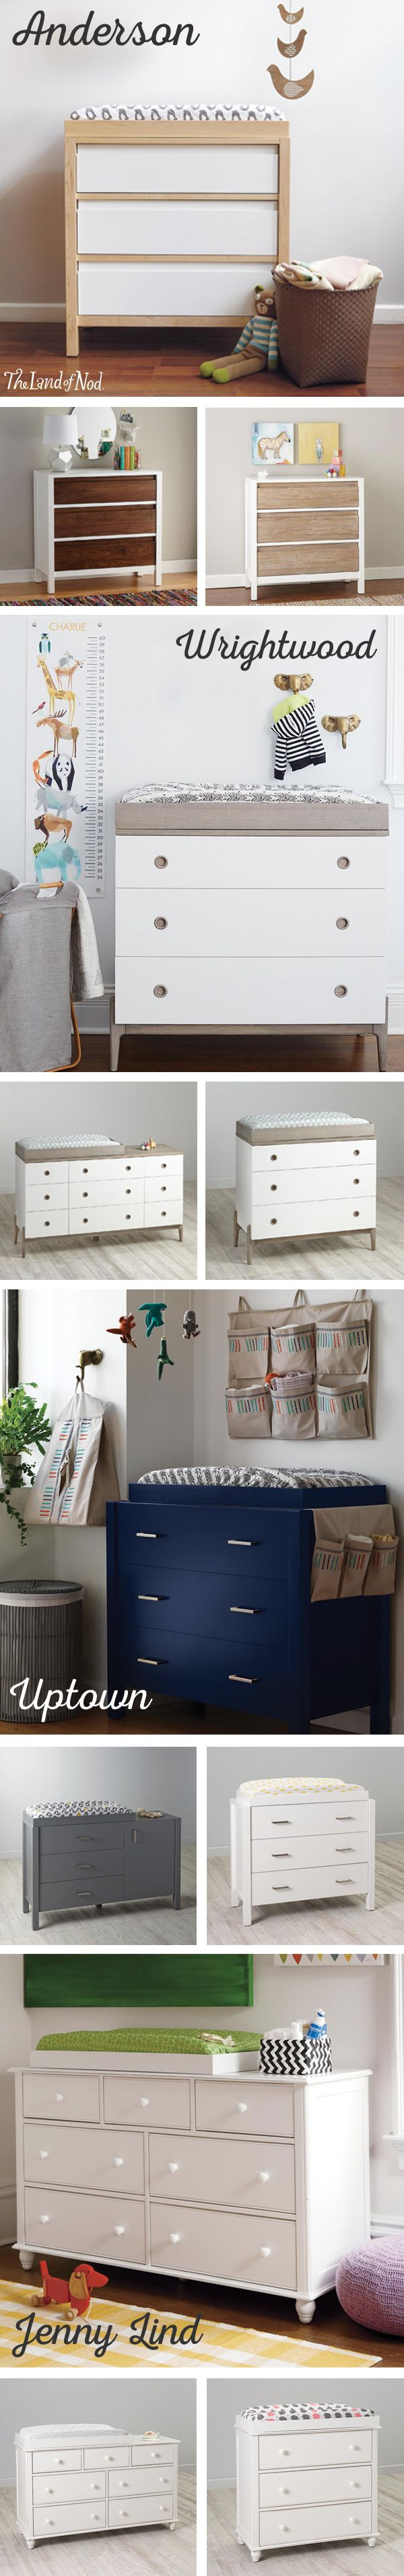 Best Changing table topper ideas on Pinterest